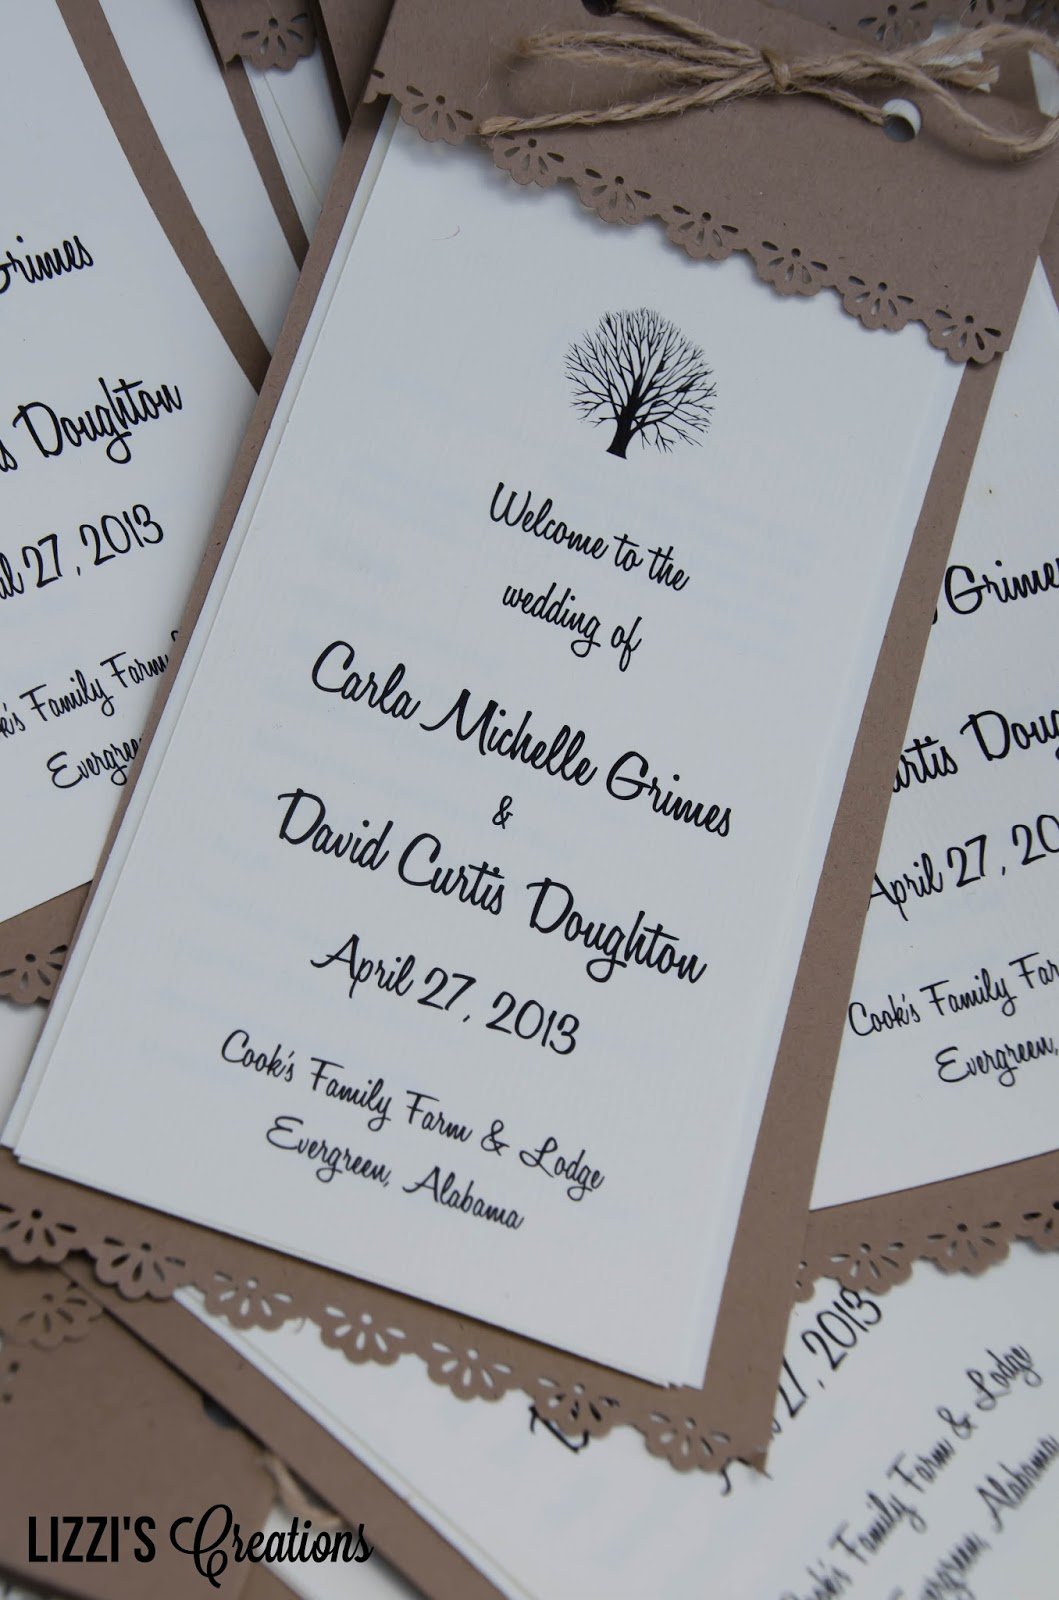 Lizzis creations project wedding invitations and programs carla also made her own programs in the same style of the invites kraft paper and white cardstock jute twine and a pretty border punch were all it took monicamarmolfo Choice Image